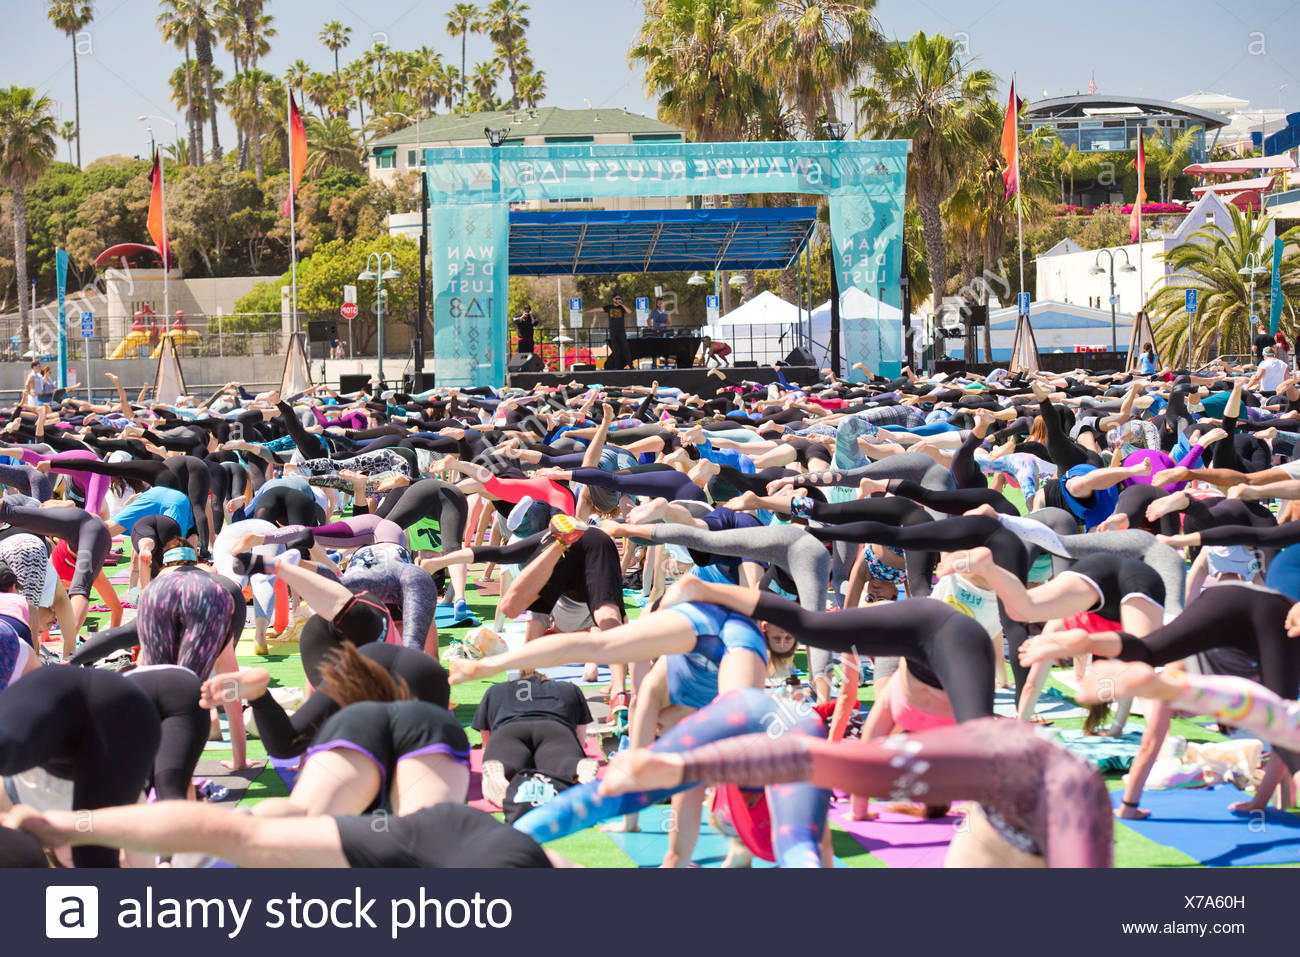 People doing one legged downward dog pose during outdoor yoga festival on Santa Monica Pier in Santa Monica, California, USA - Stock Image